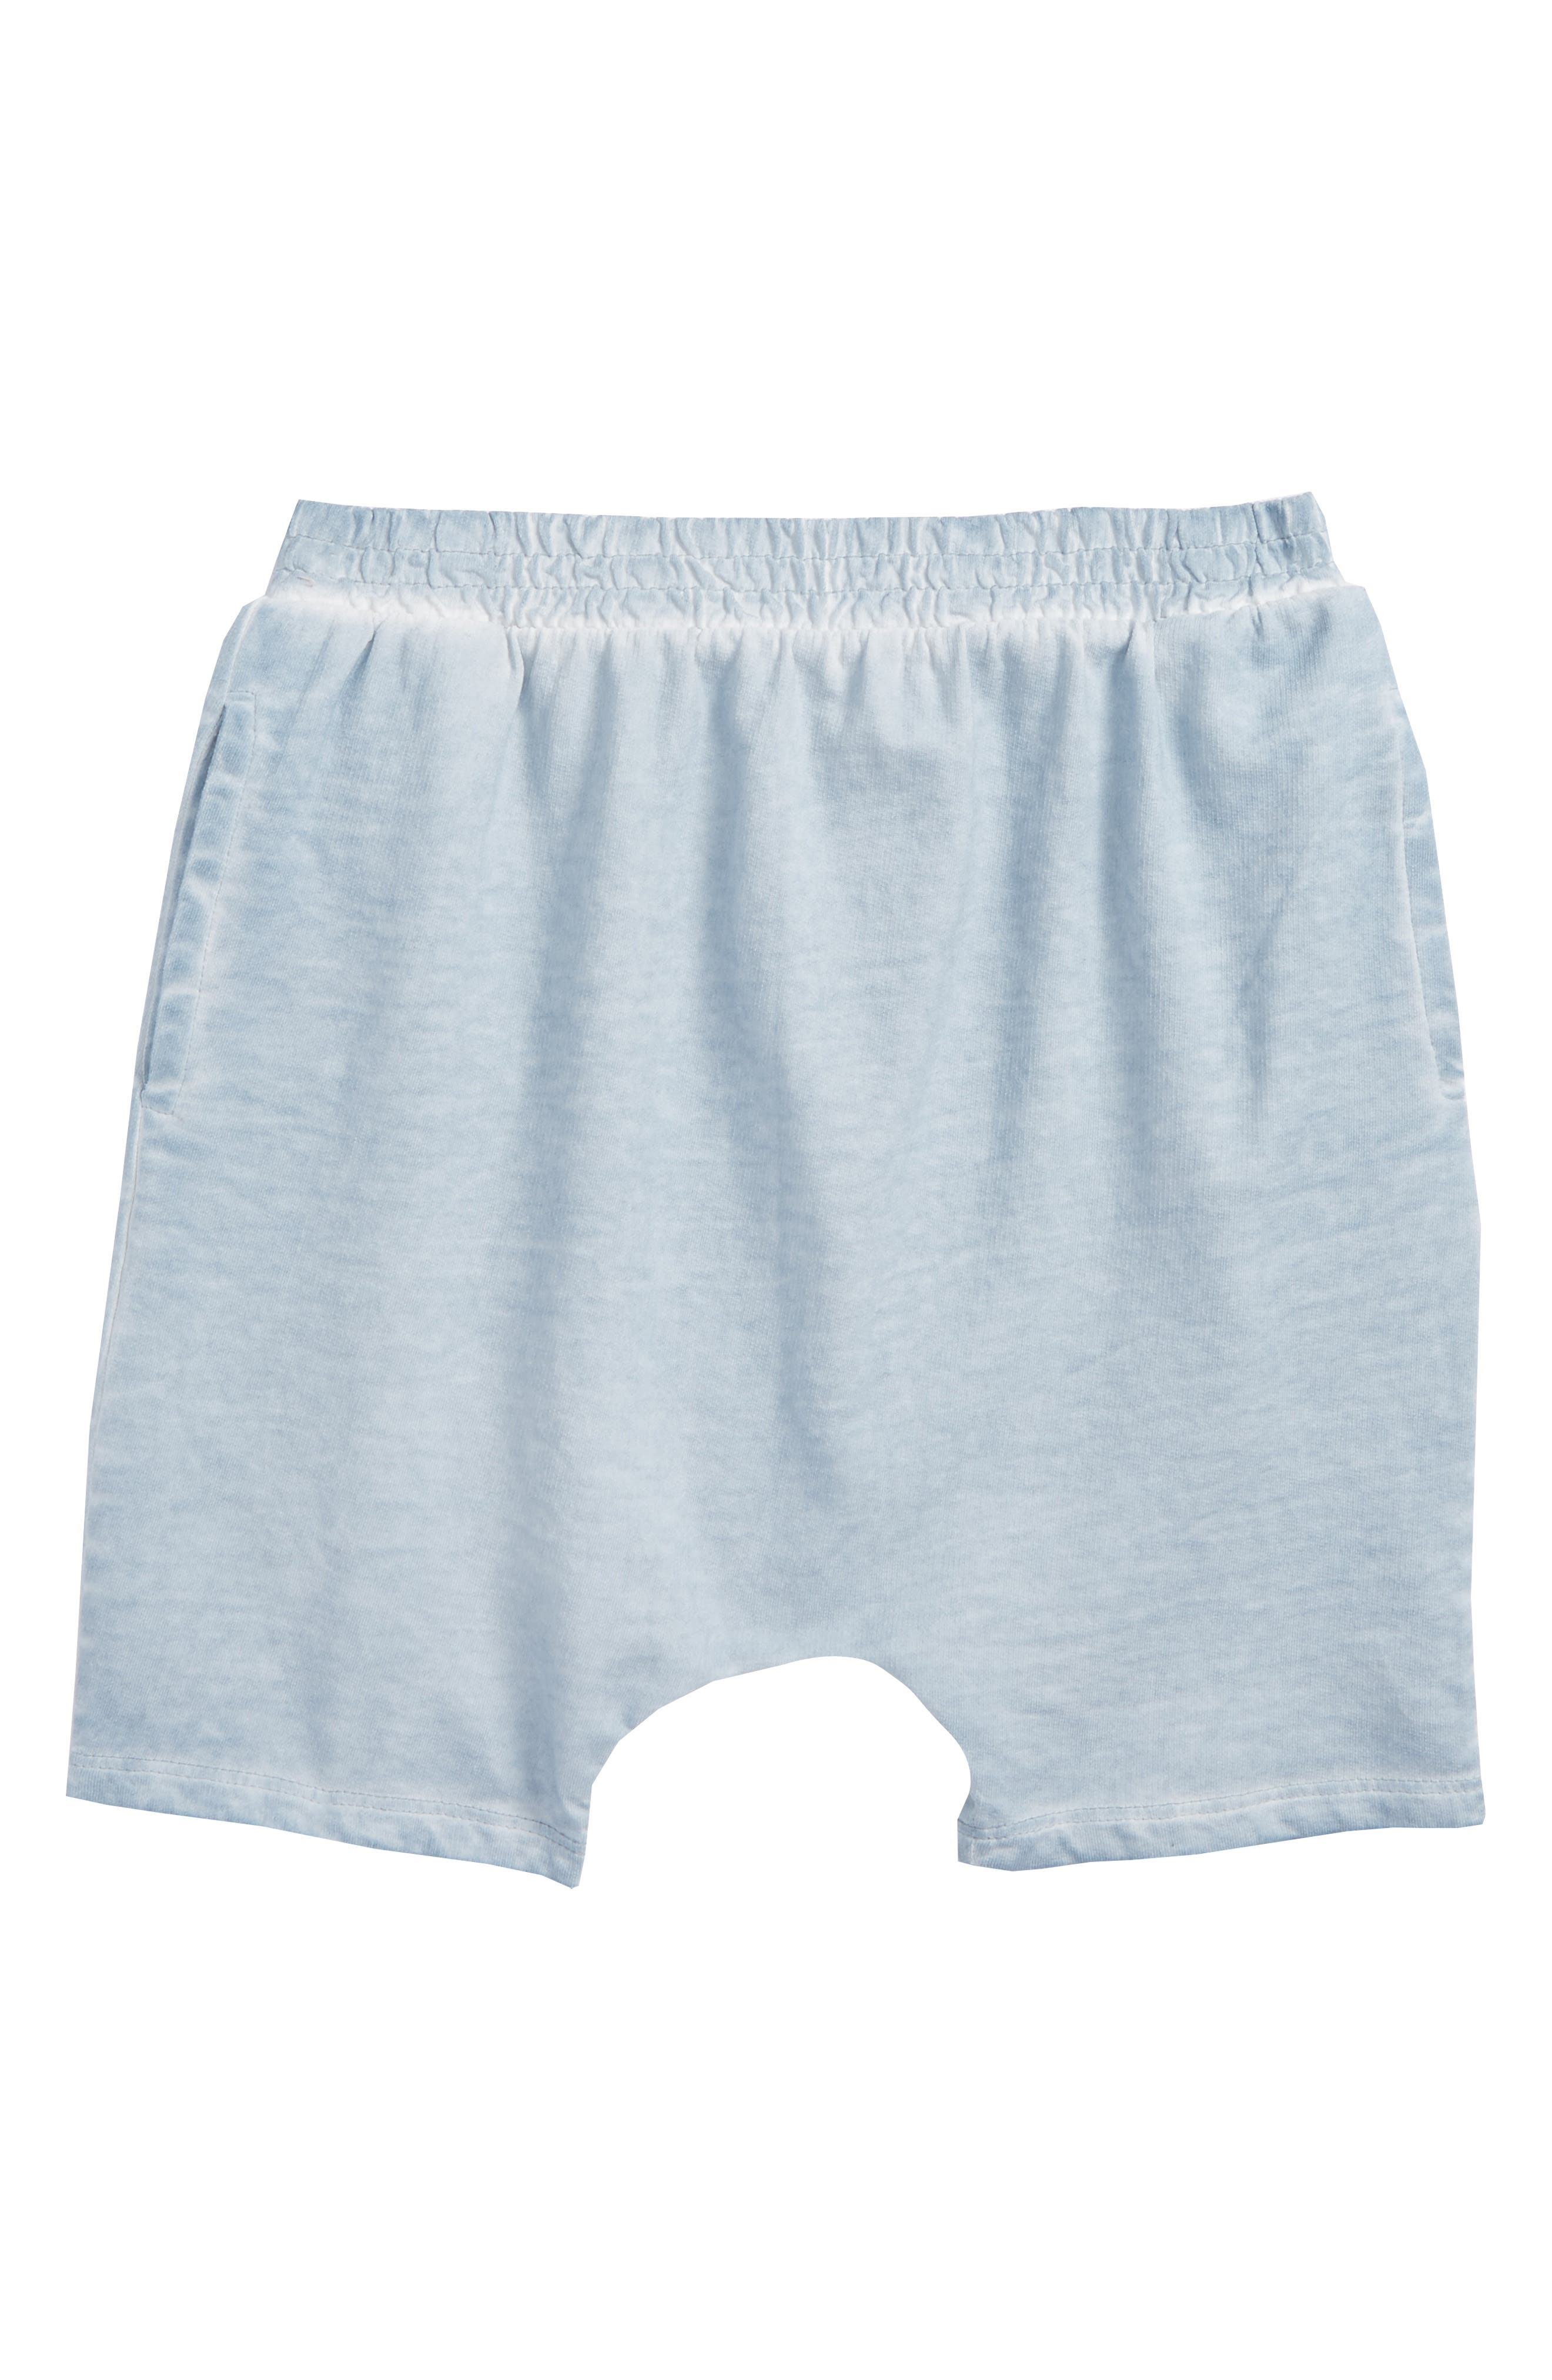 Cotton Shorts,                             Main thumbnail 1, color,                             Blue Fog Wash